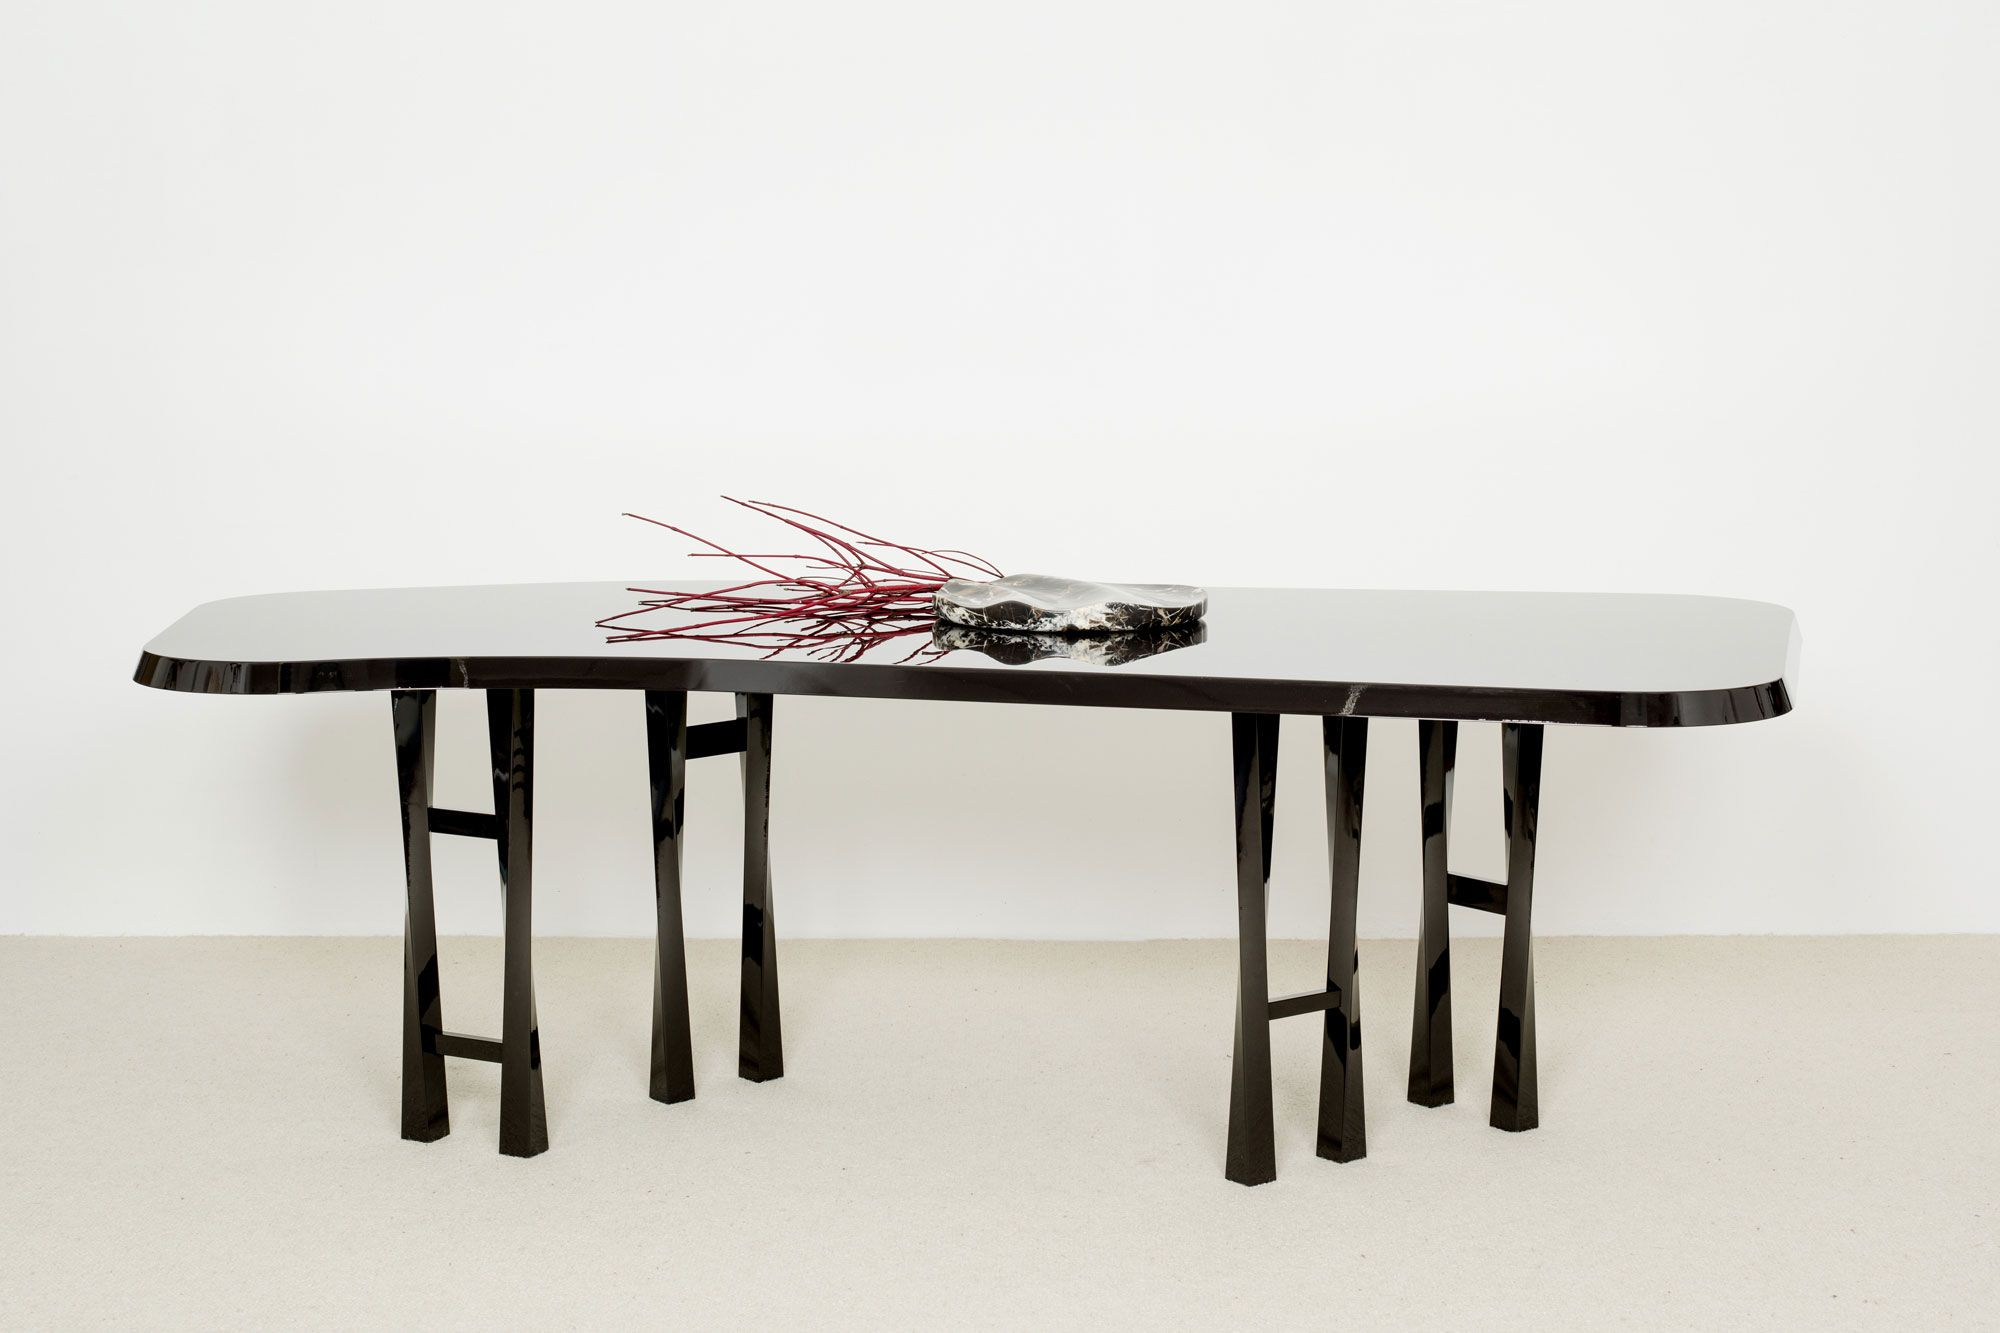 Twi Table - Christophe Delcourt | Furnishing | Pinterest | Tables ...